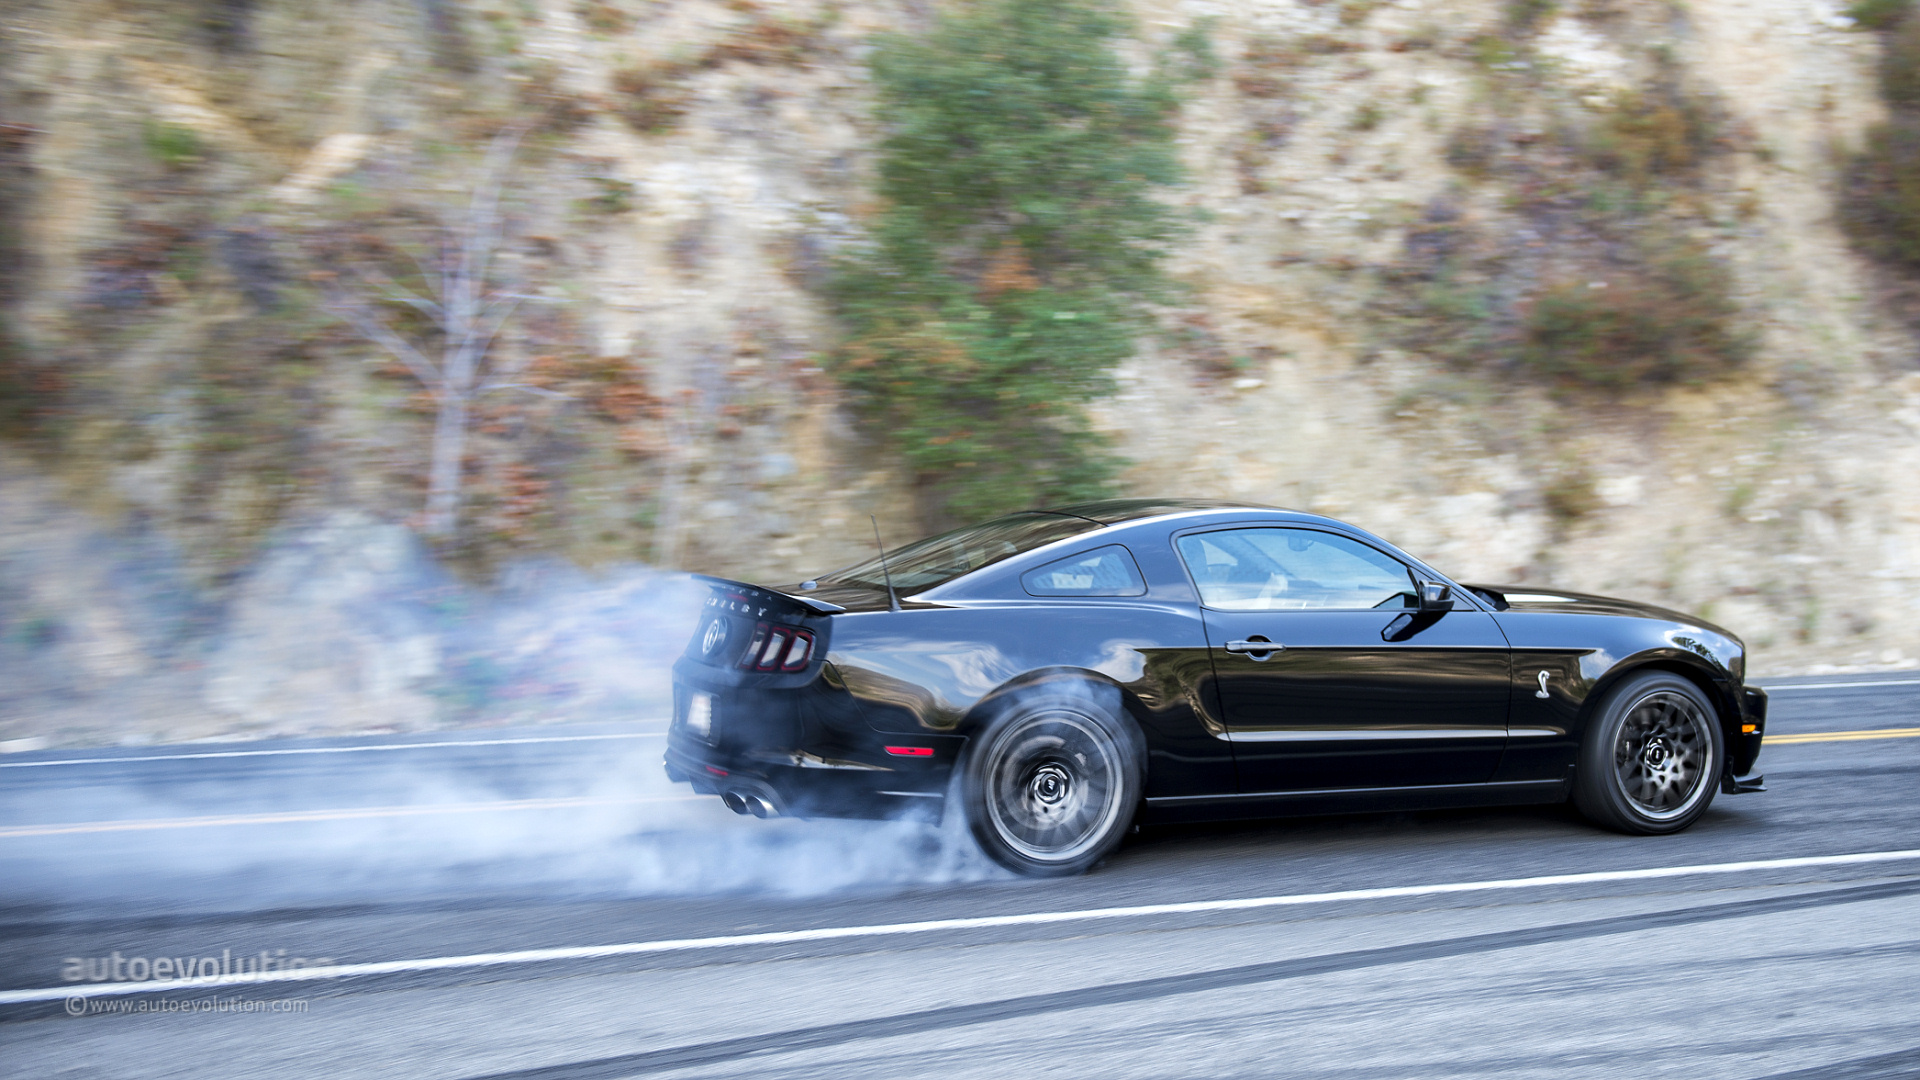 2014 ford shelby gt500 - Photo Gallery 56